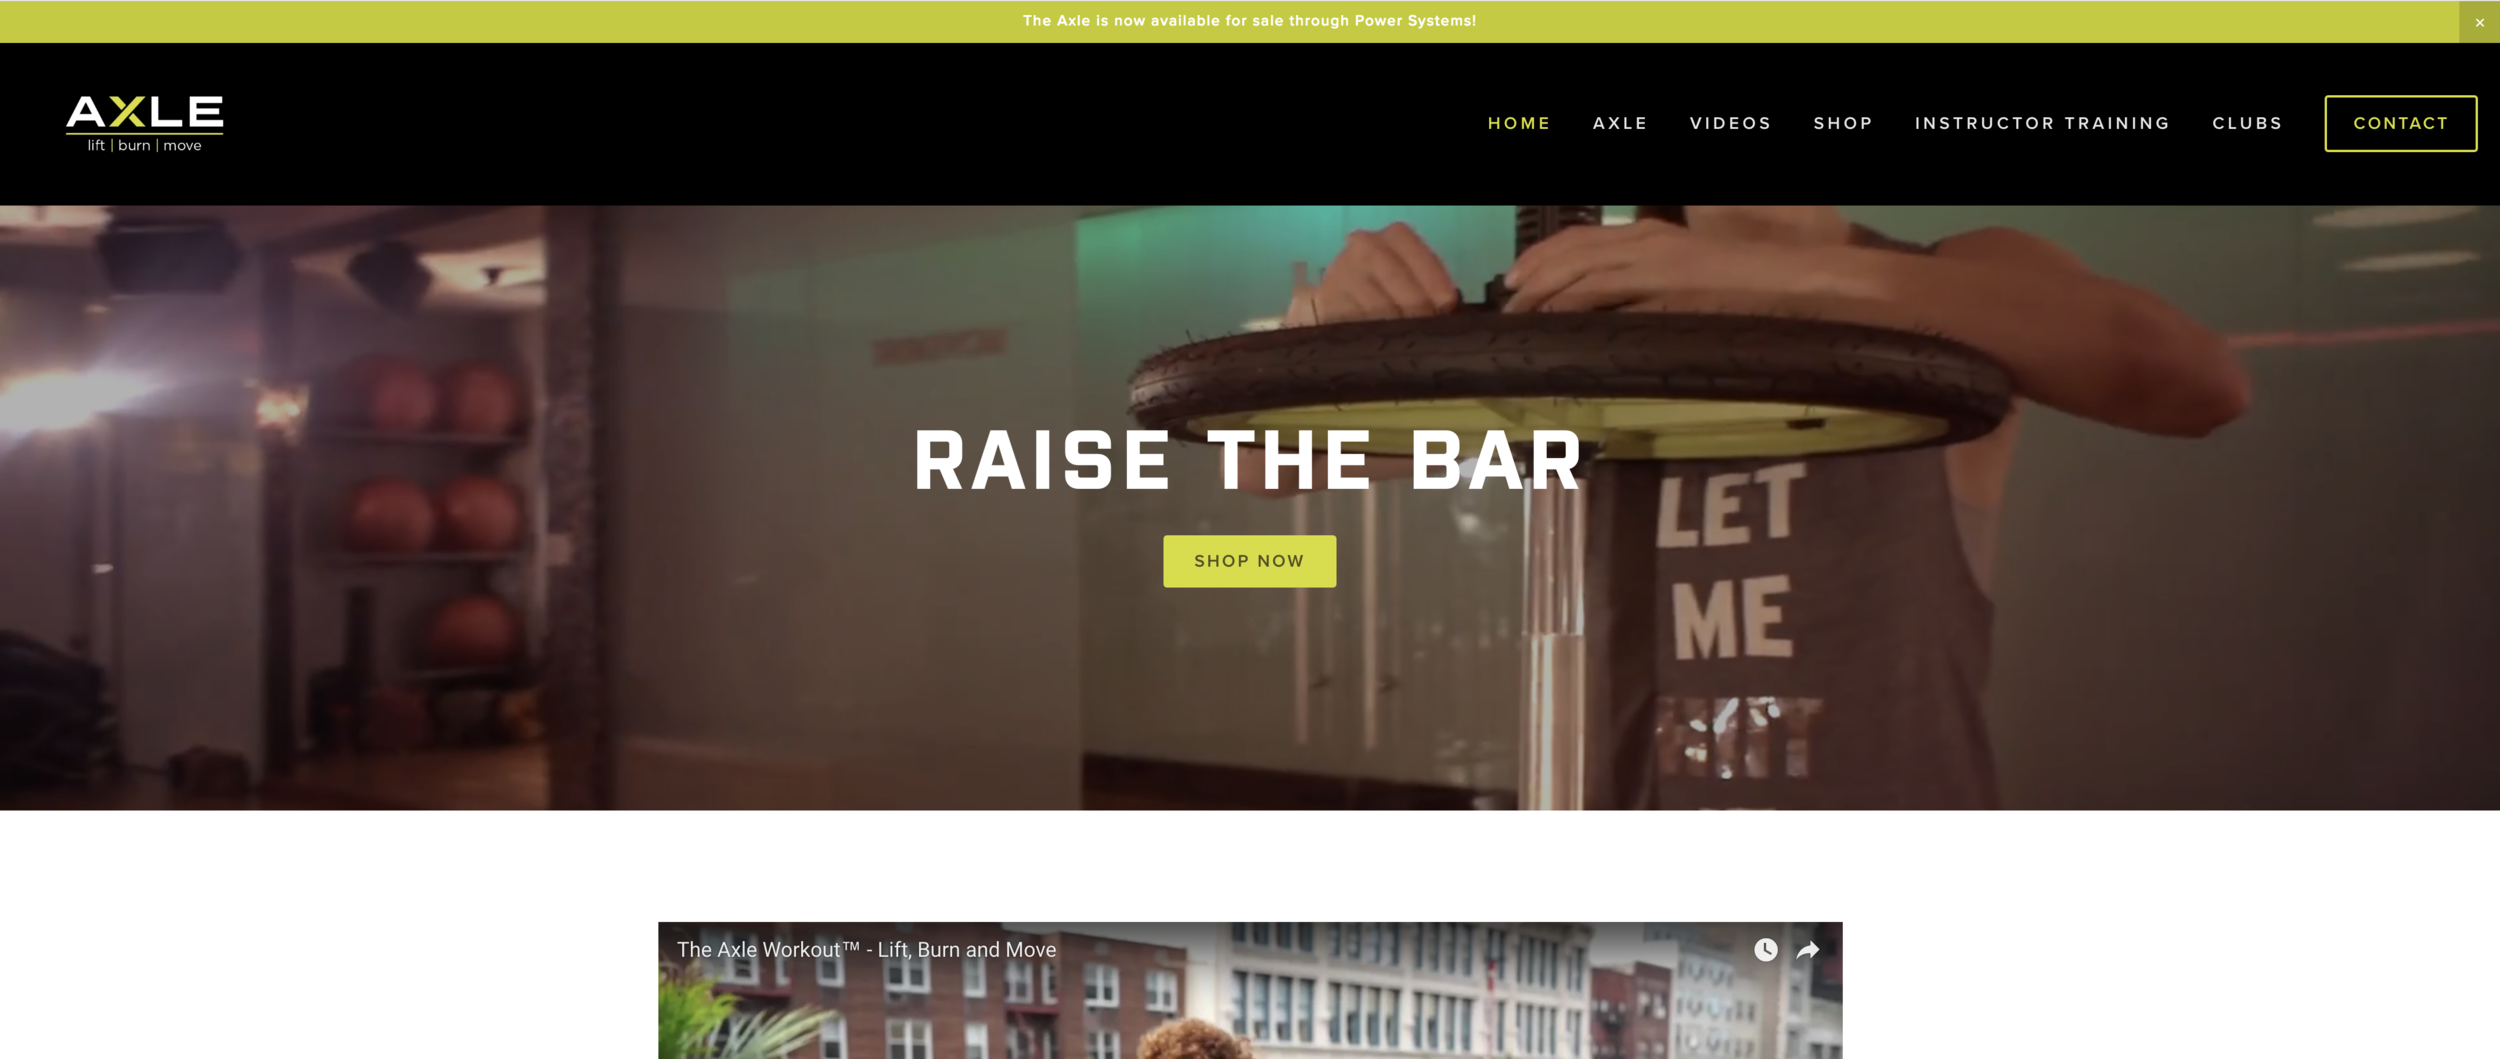 The Axleworkout website and design